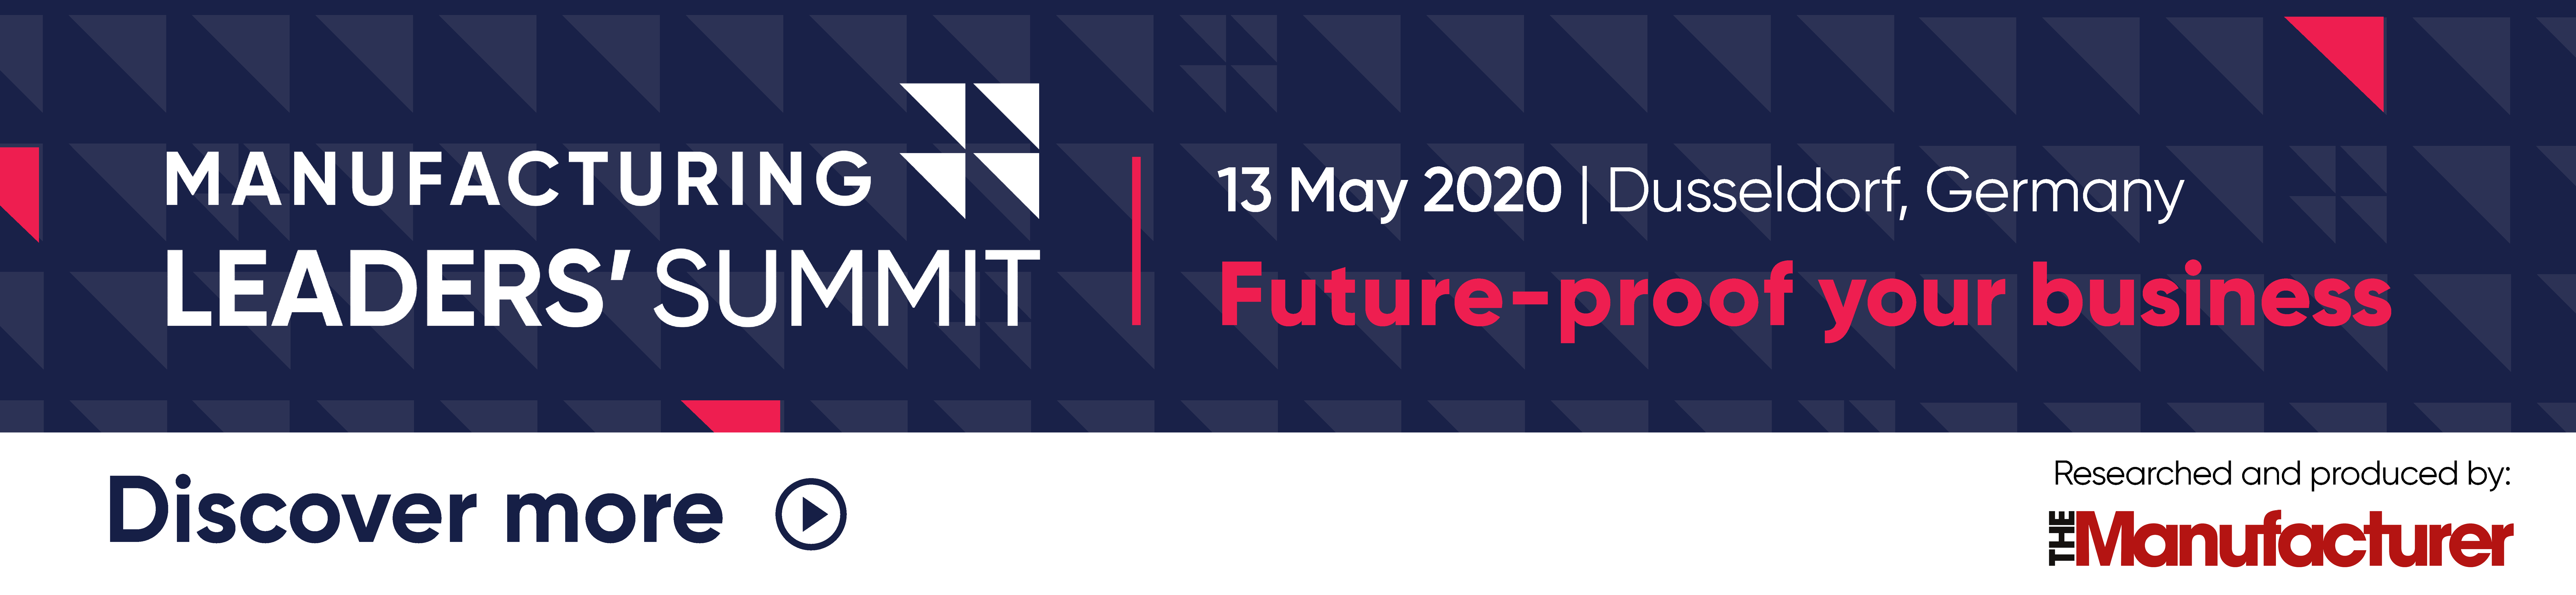 Manufacturing Leaders' Summit EU 2020 Banner